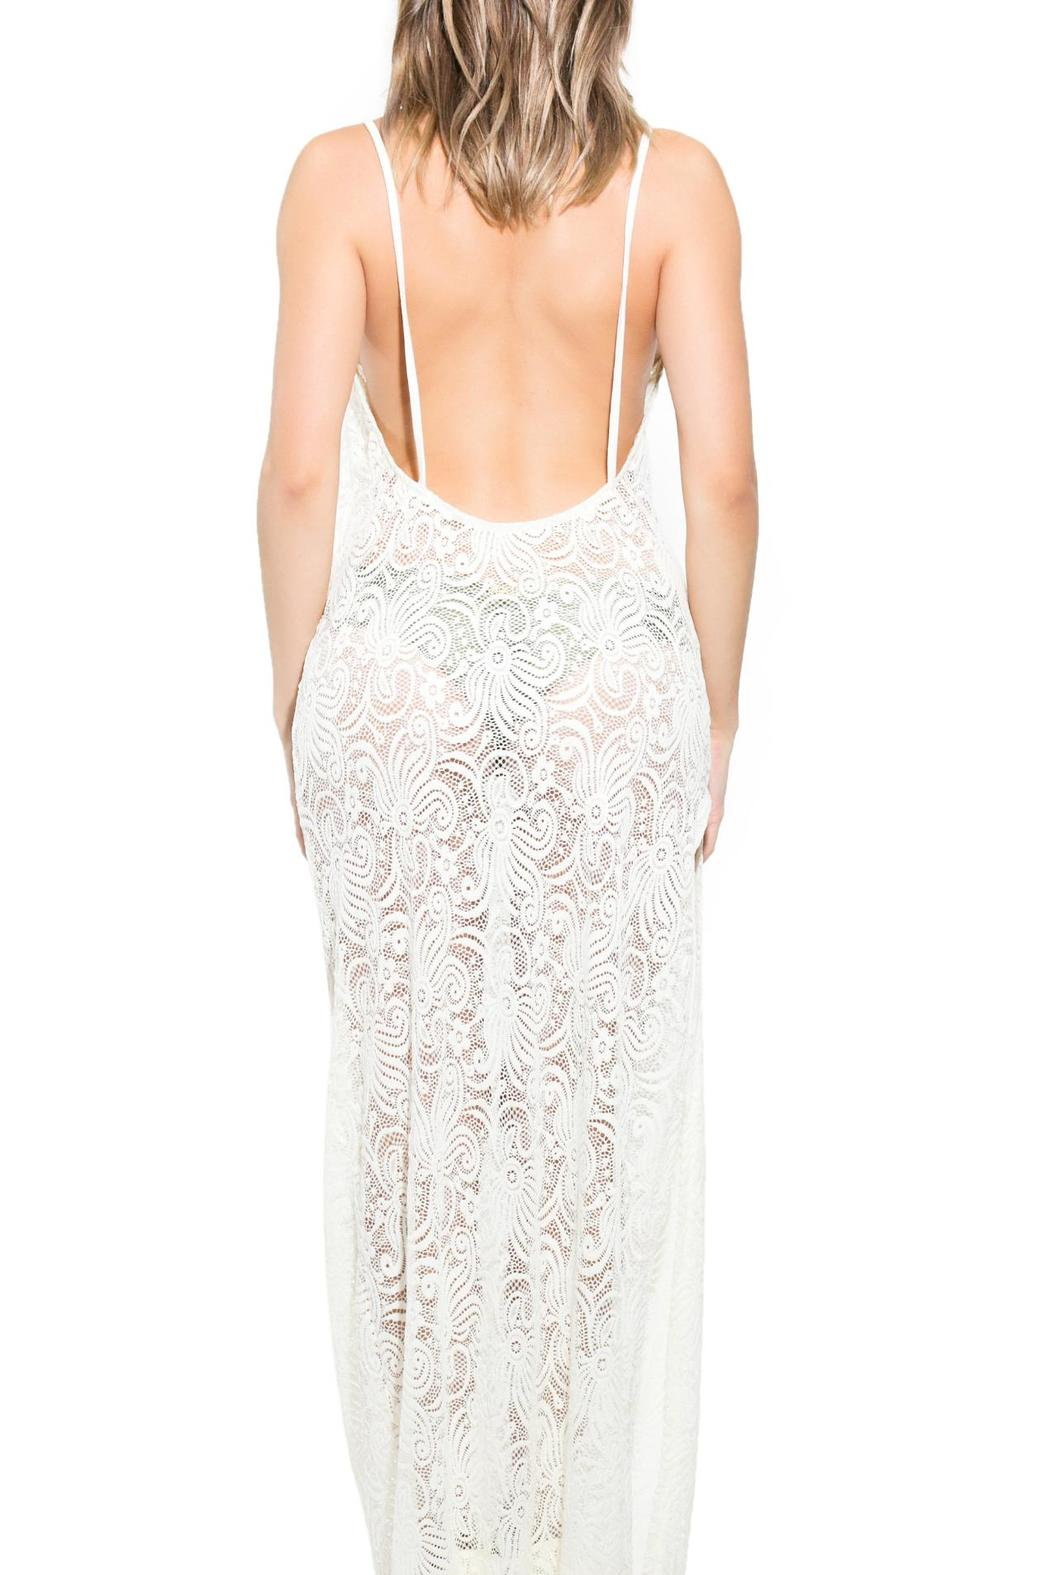 BeachCandy Backless Lace Coverup - Side Cropped Image